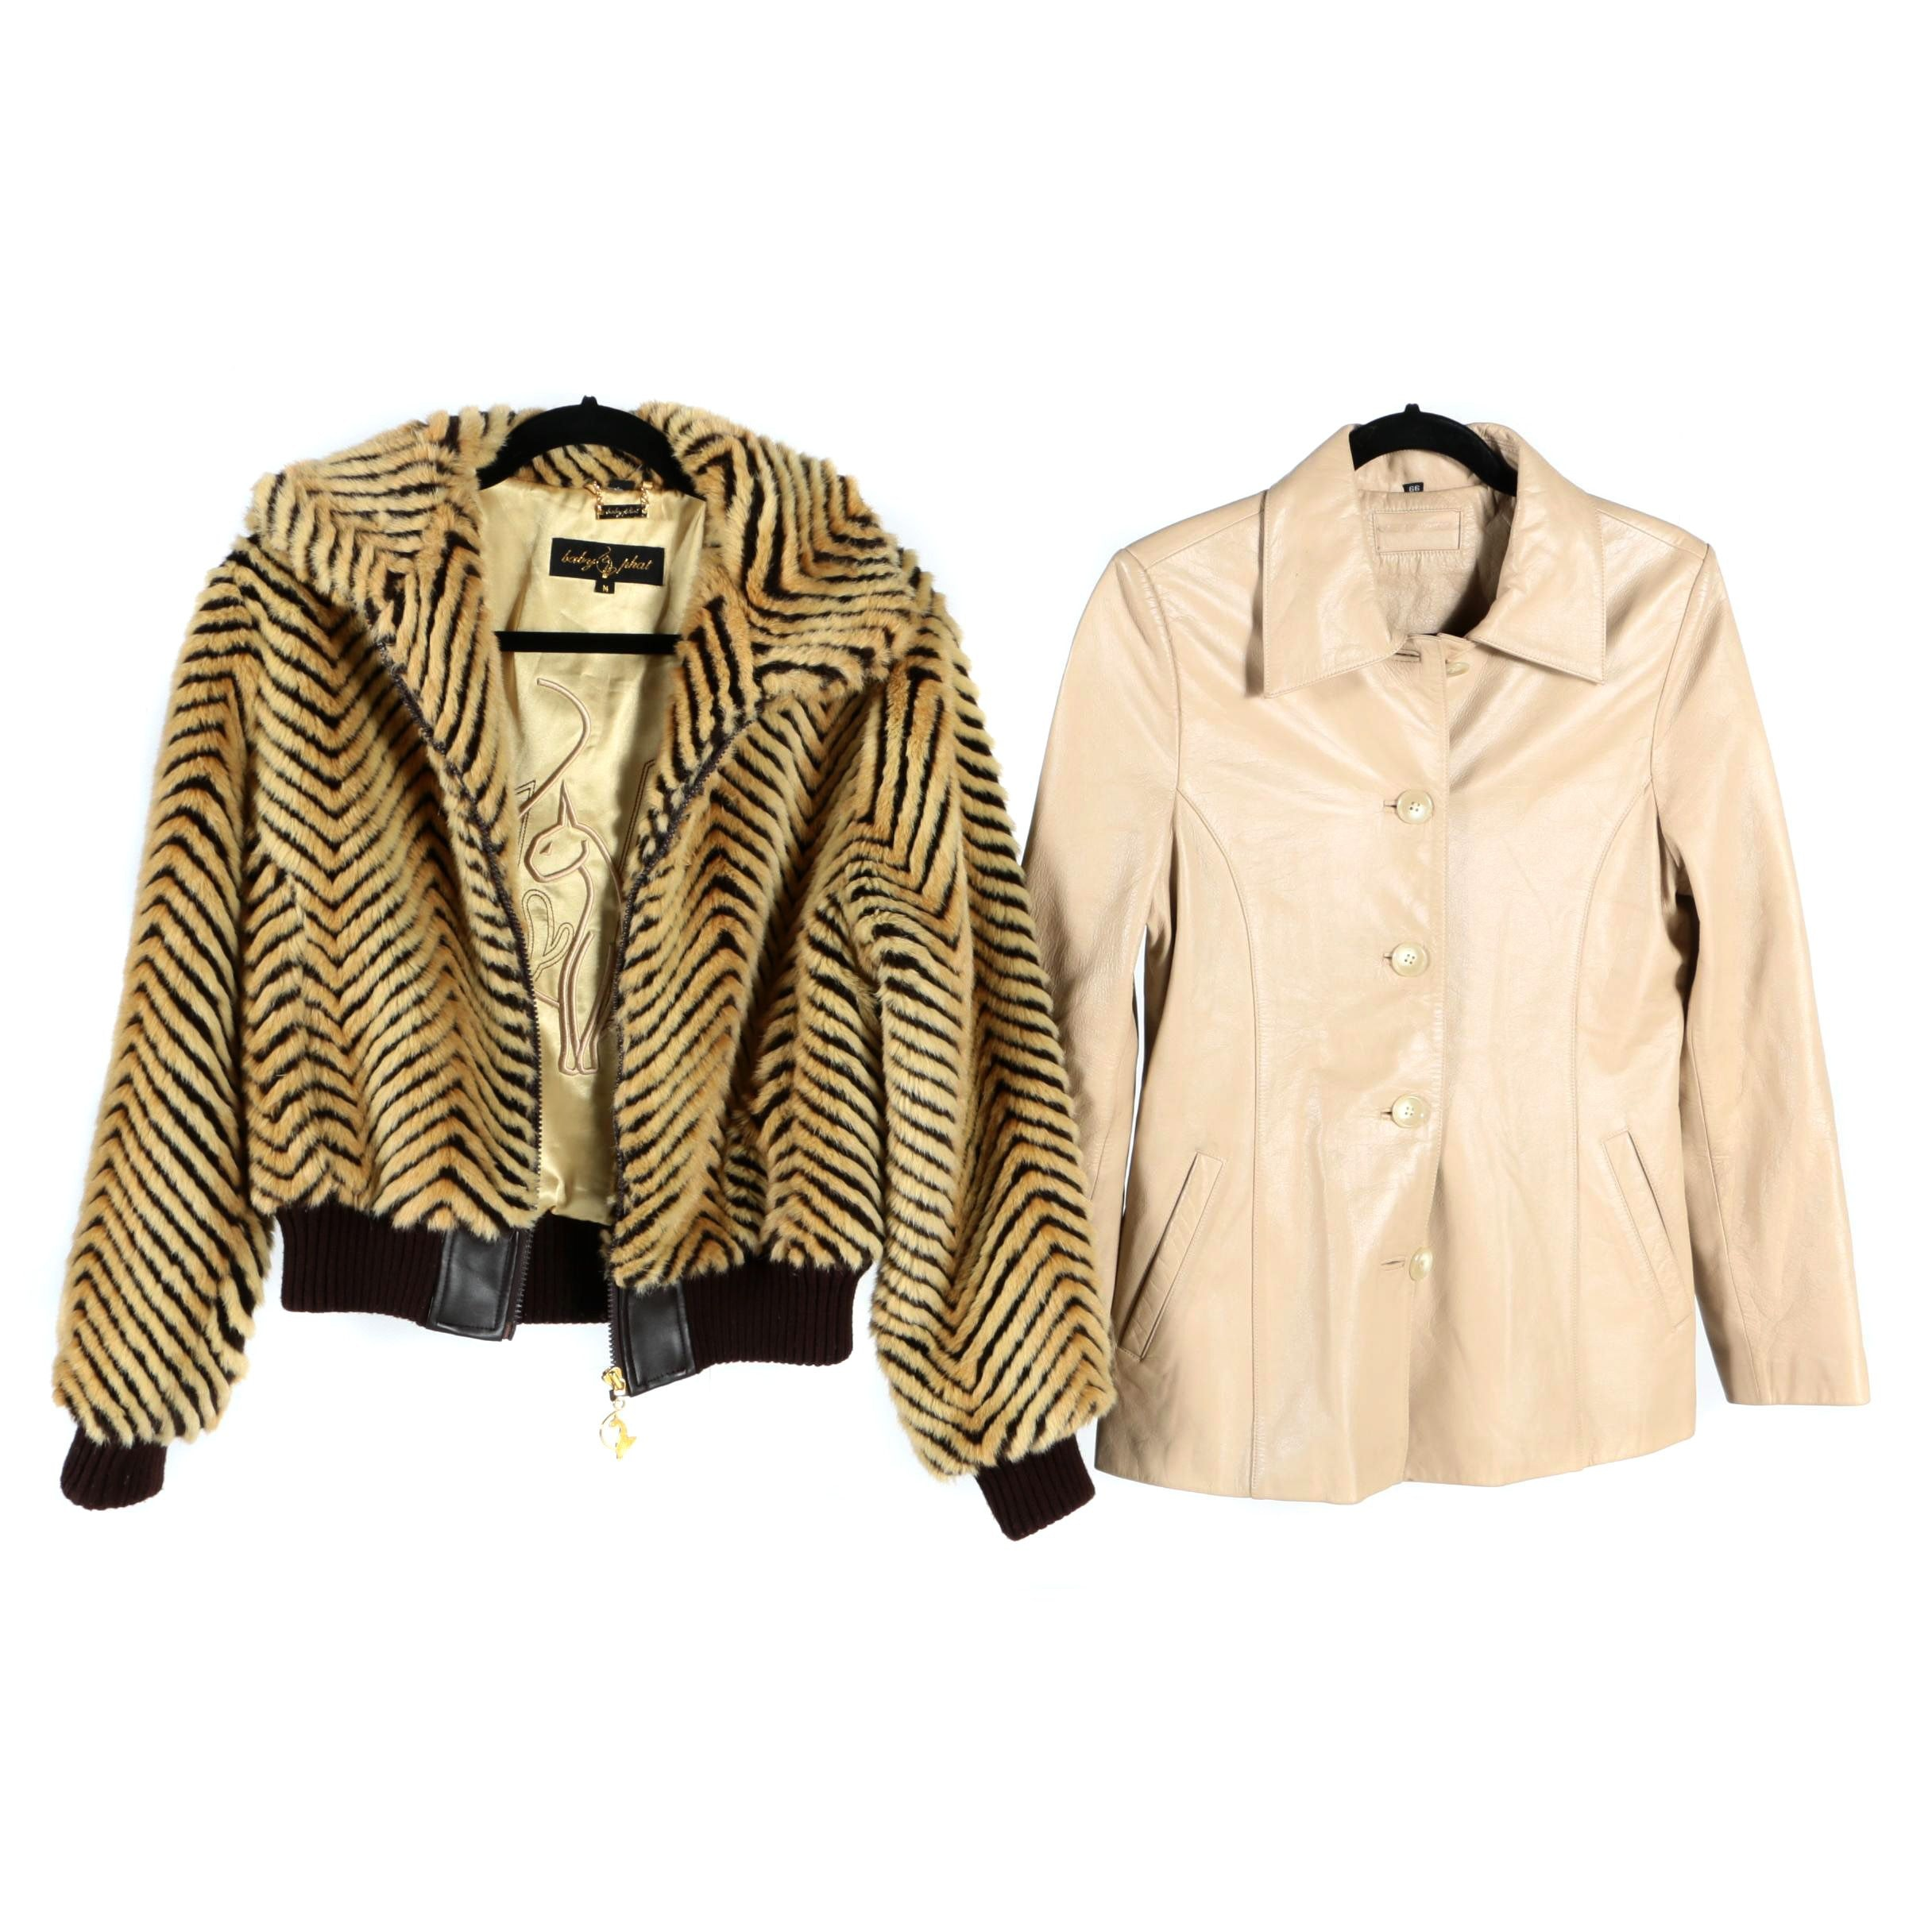 Baby Phat Faux Fur Jacket and Leather Jacket